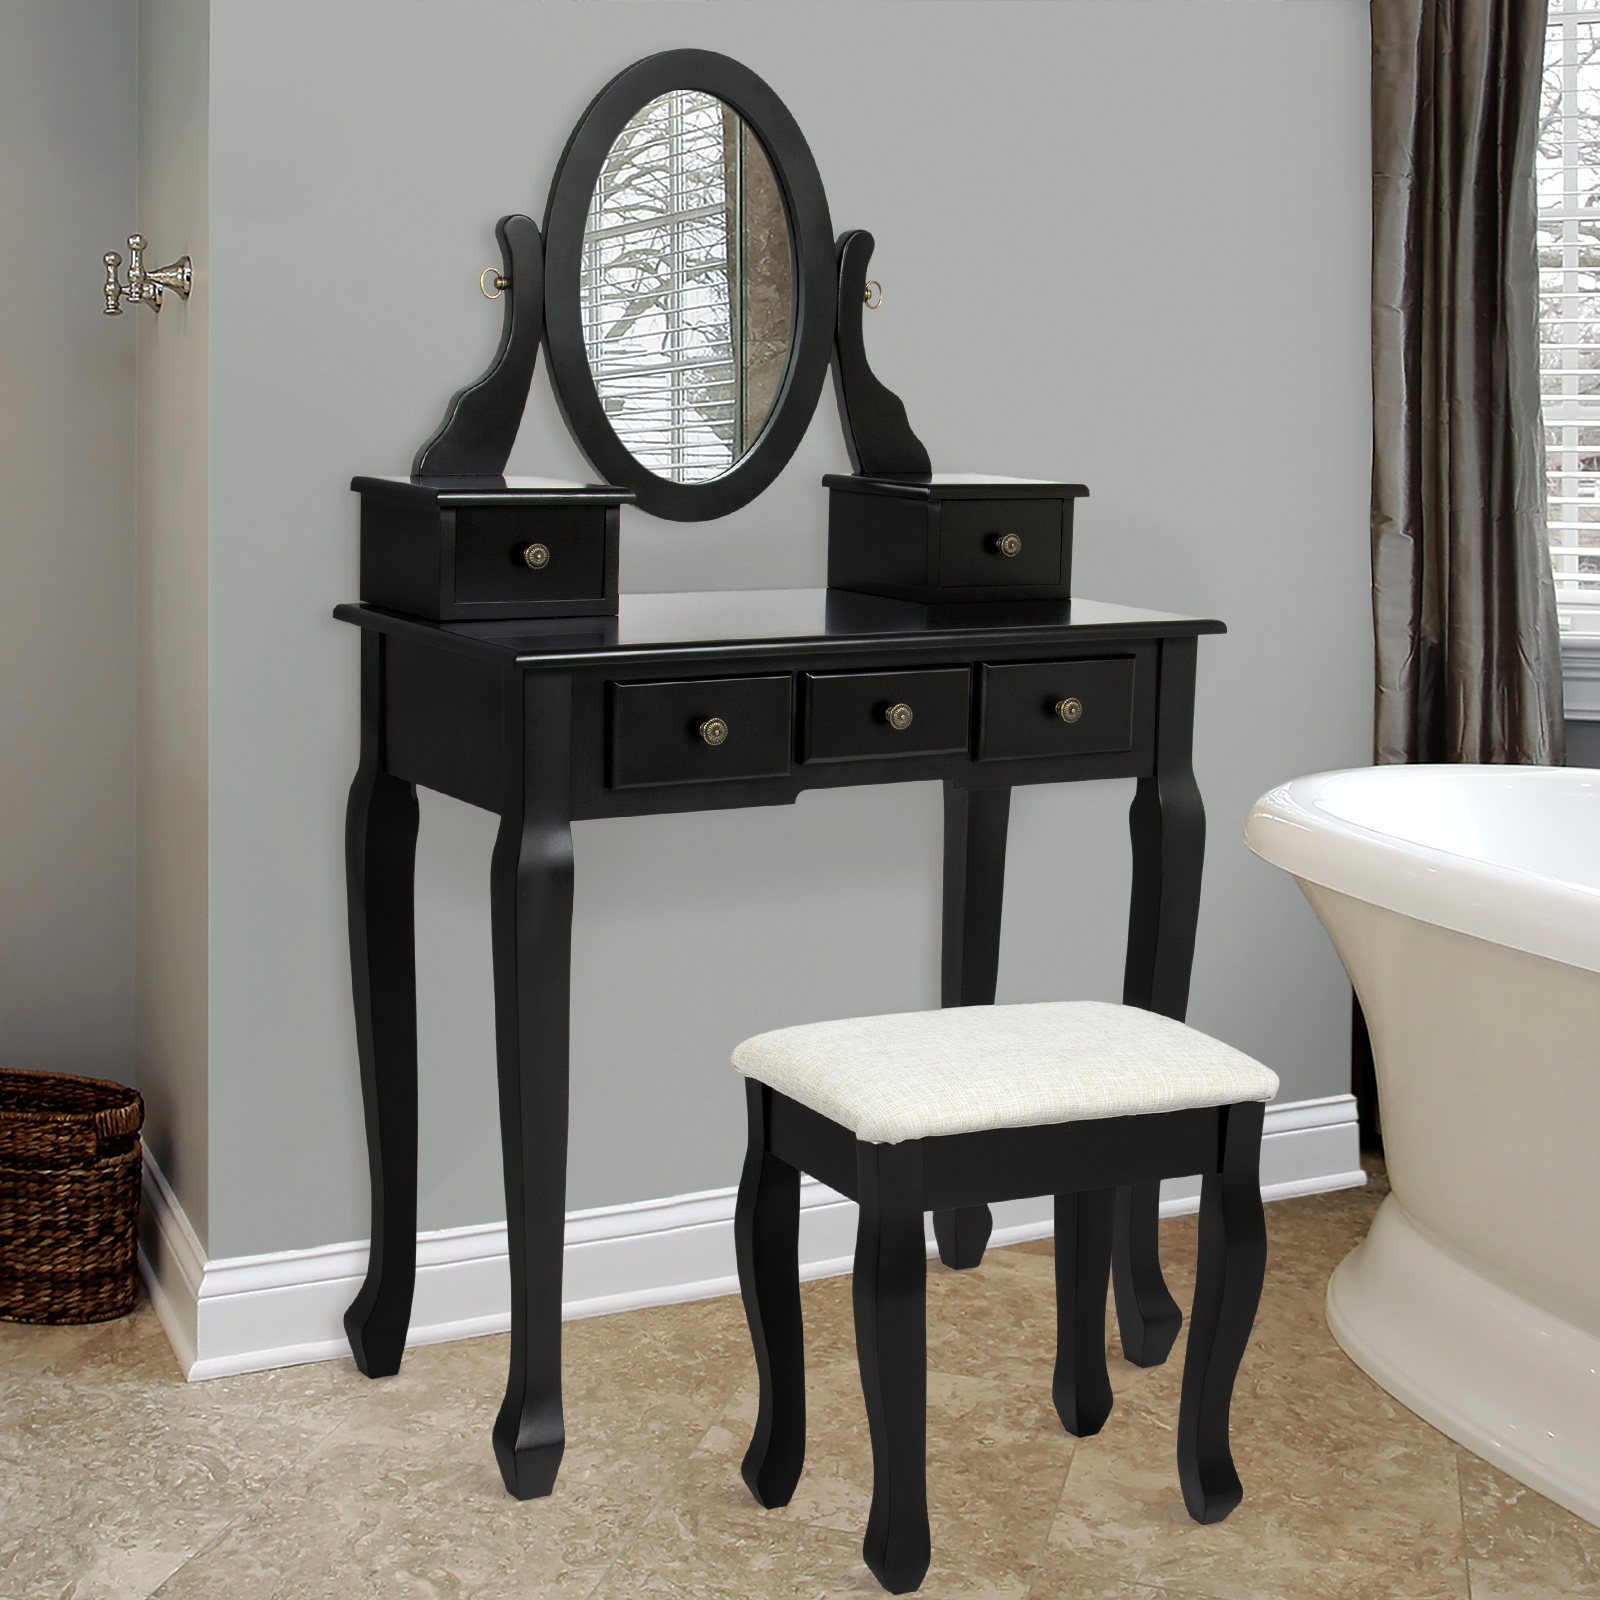 bathroom vanity table jewelry makeup desk bench drawer black hair